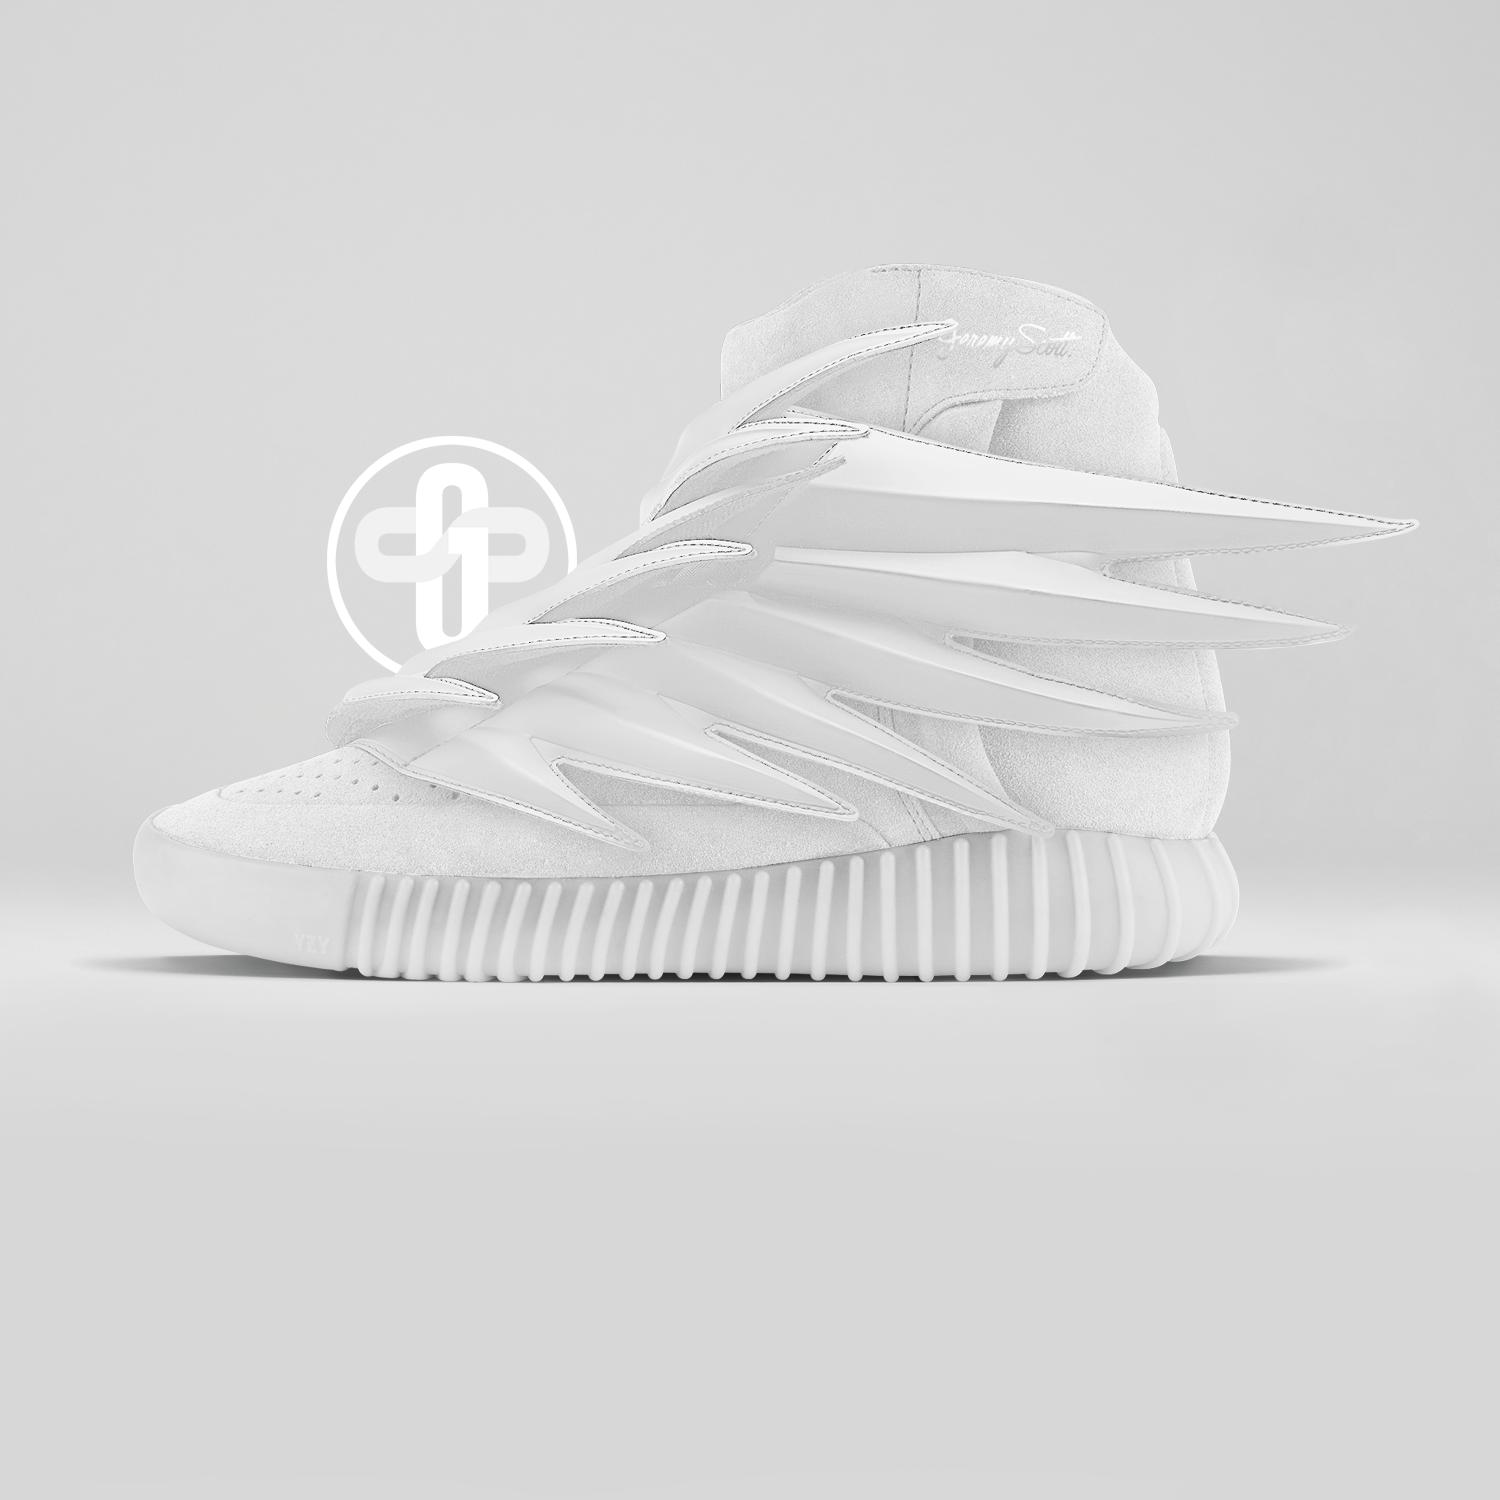 Jeremy Scott x Adidas Yeezy Boost 750 White Wings | Jeremy